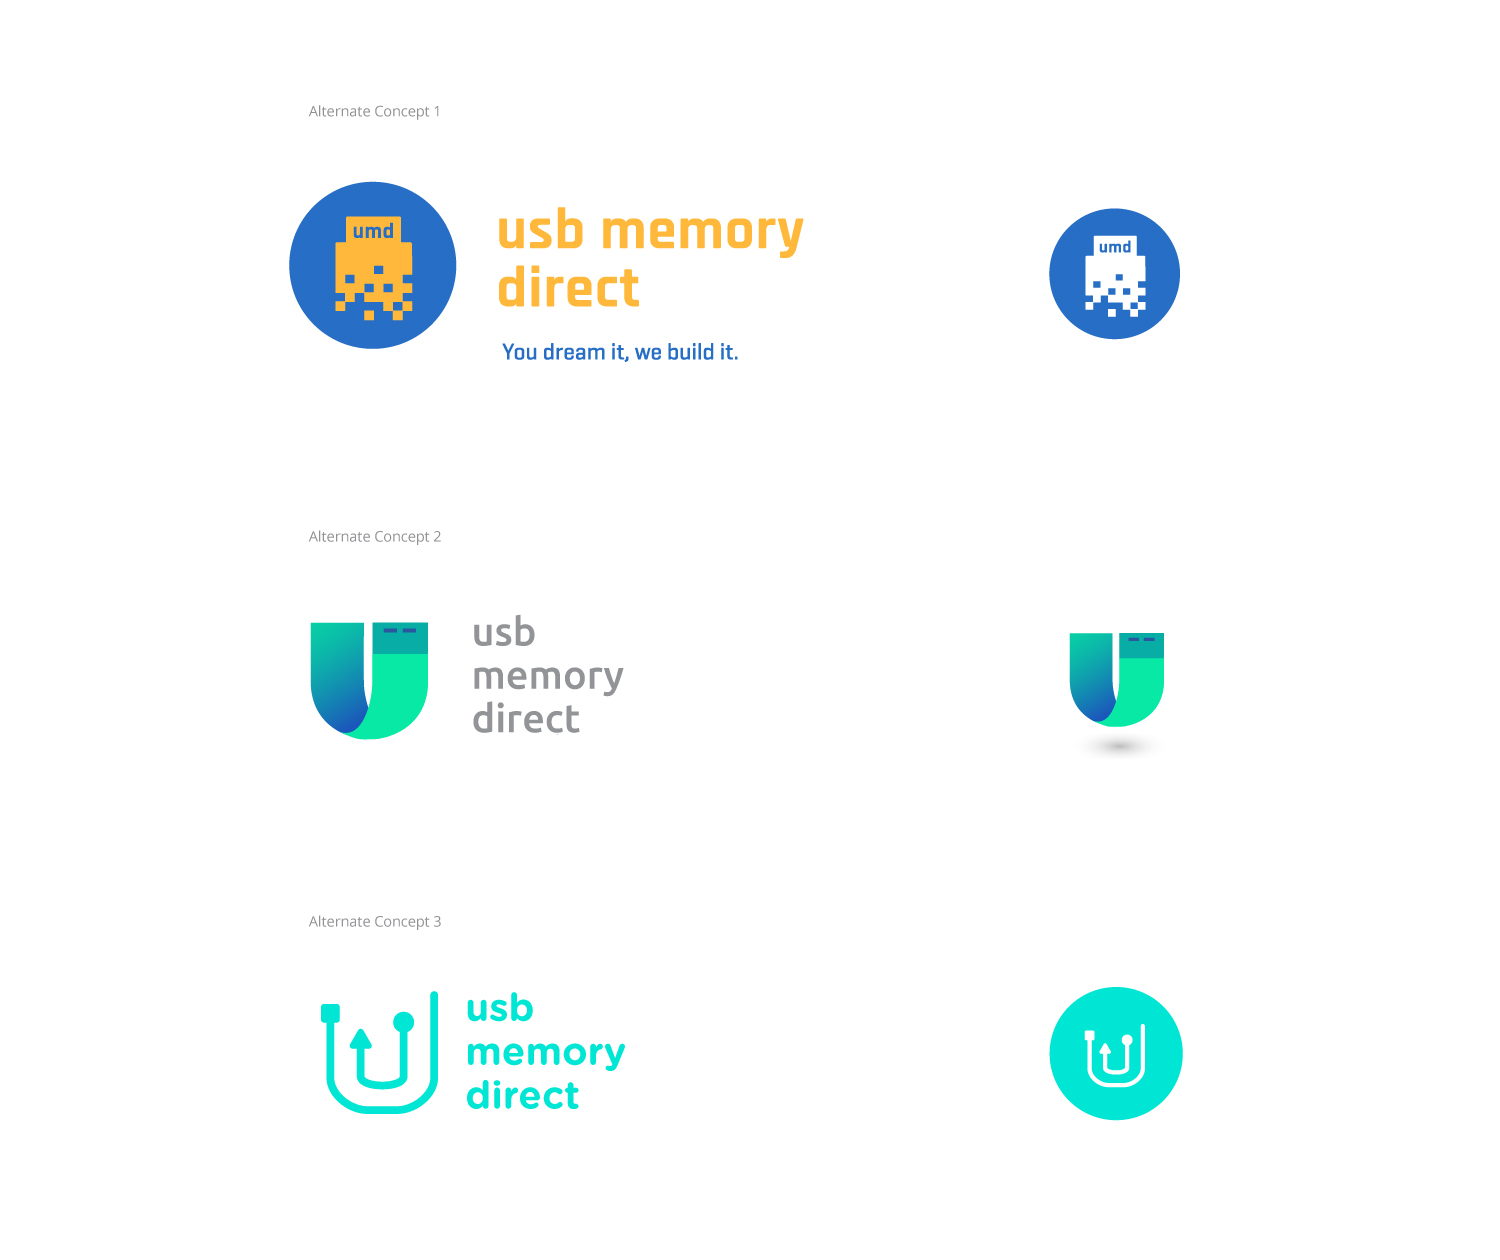 USBMemoryDirect_Alternates